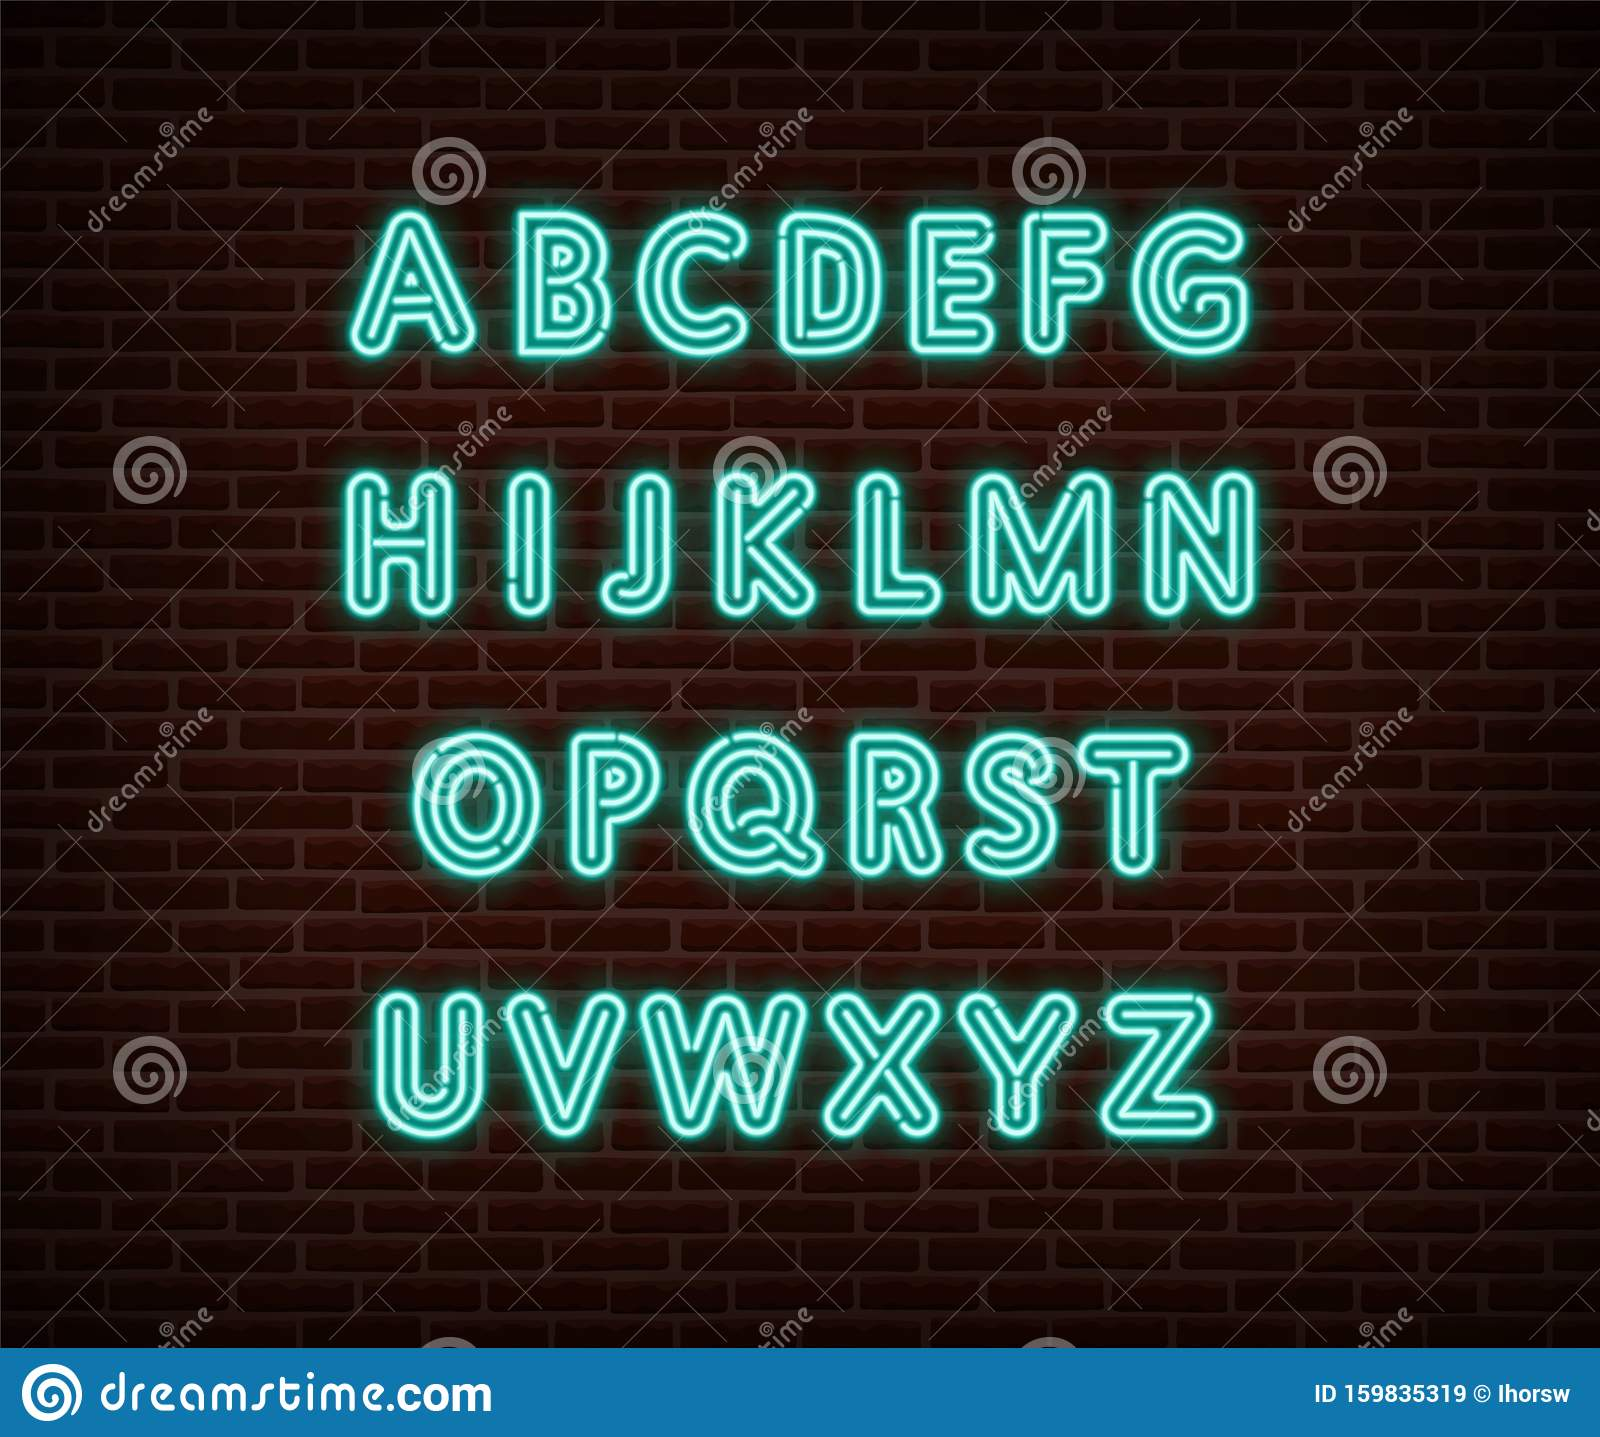 Neon Alphabet Type Font Vector Isolated On Brick Wall. ABC ...